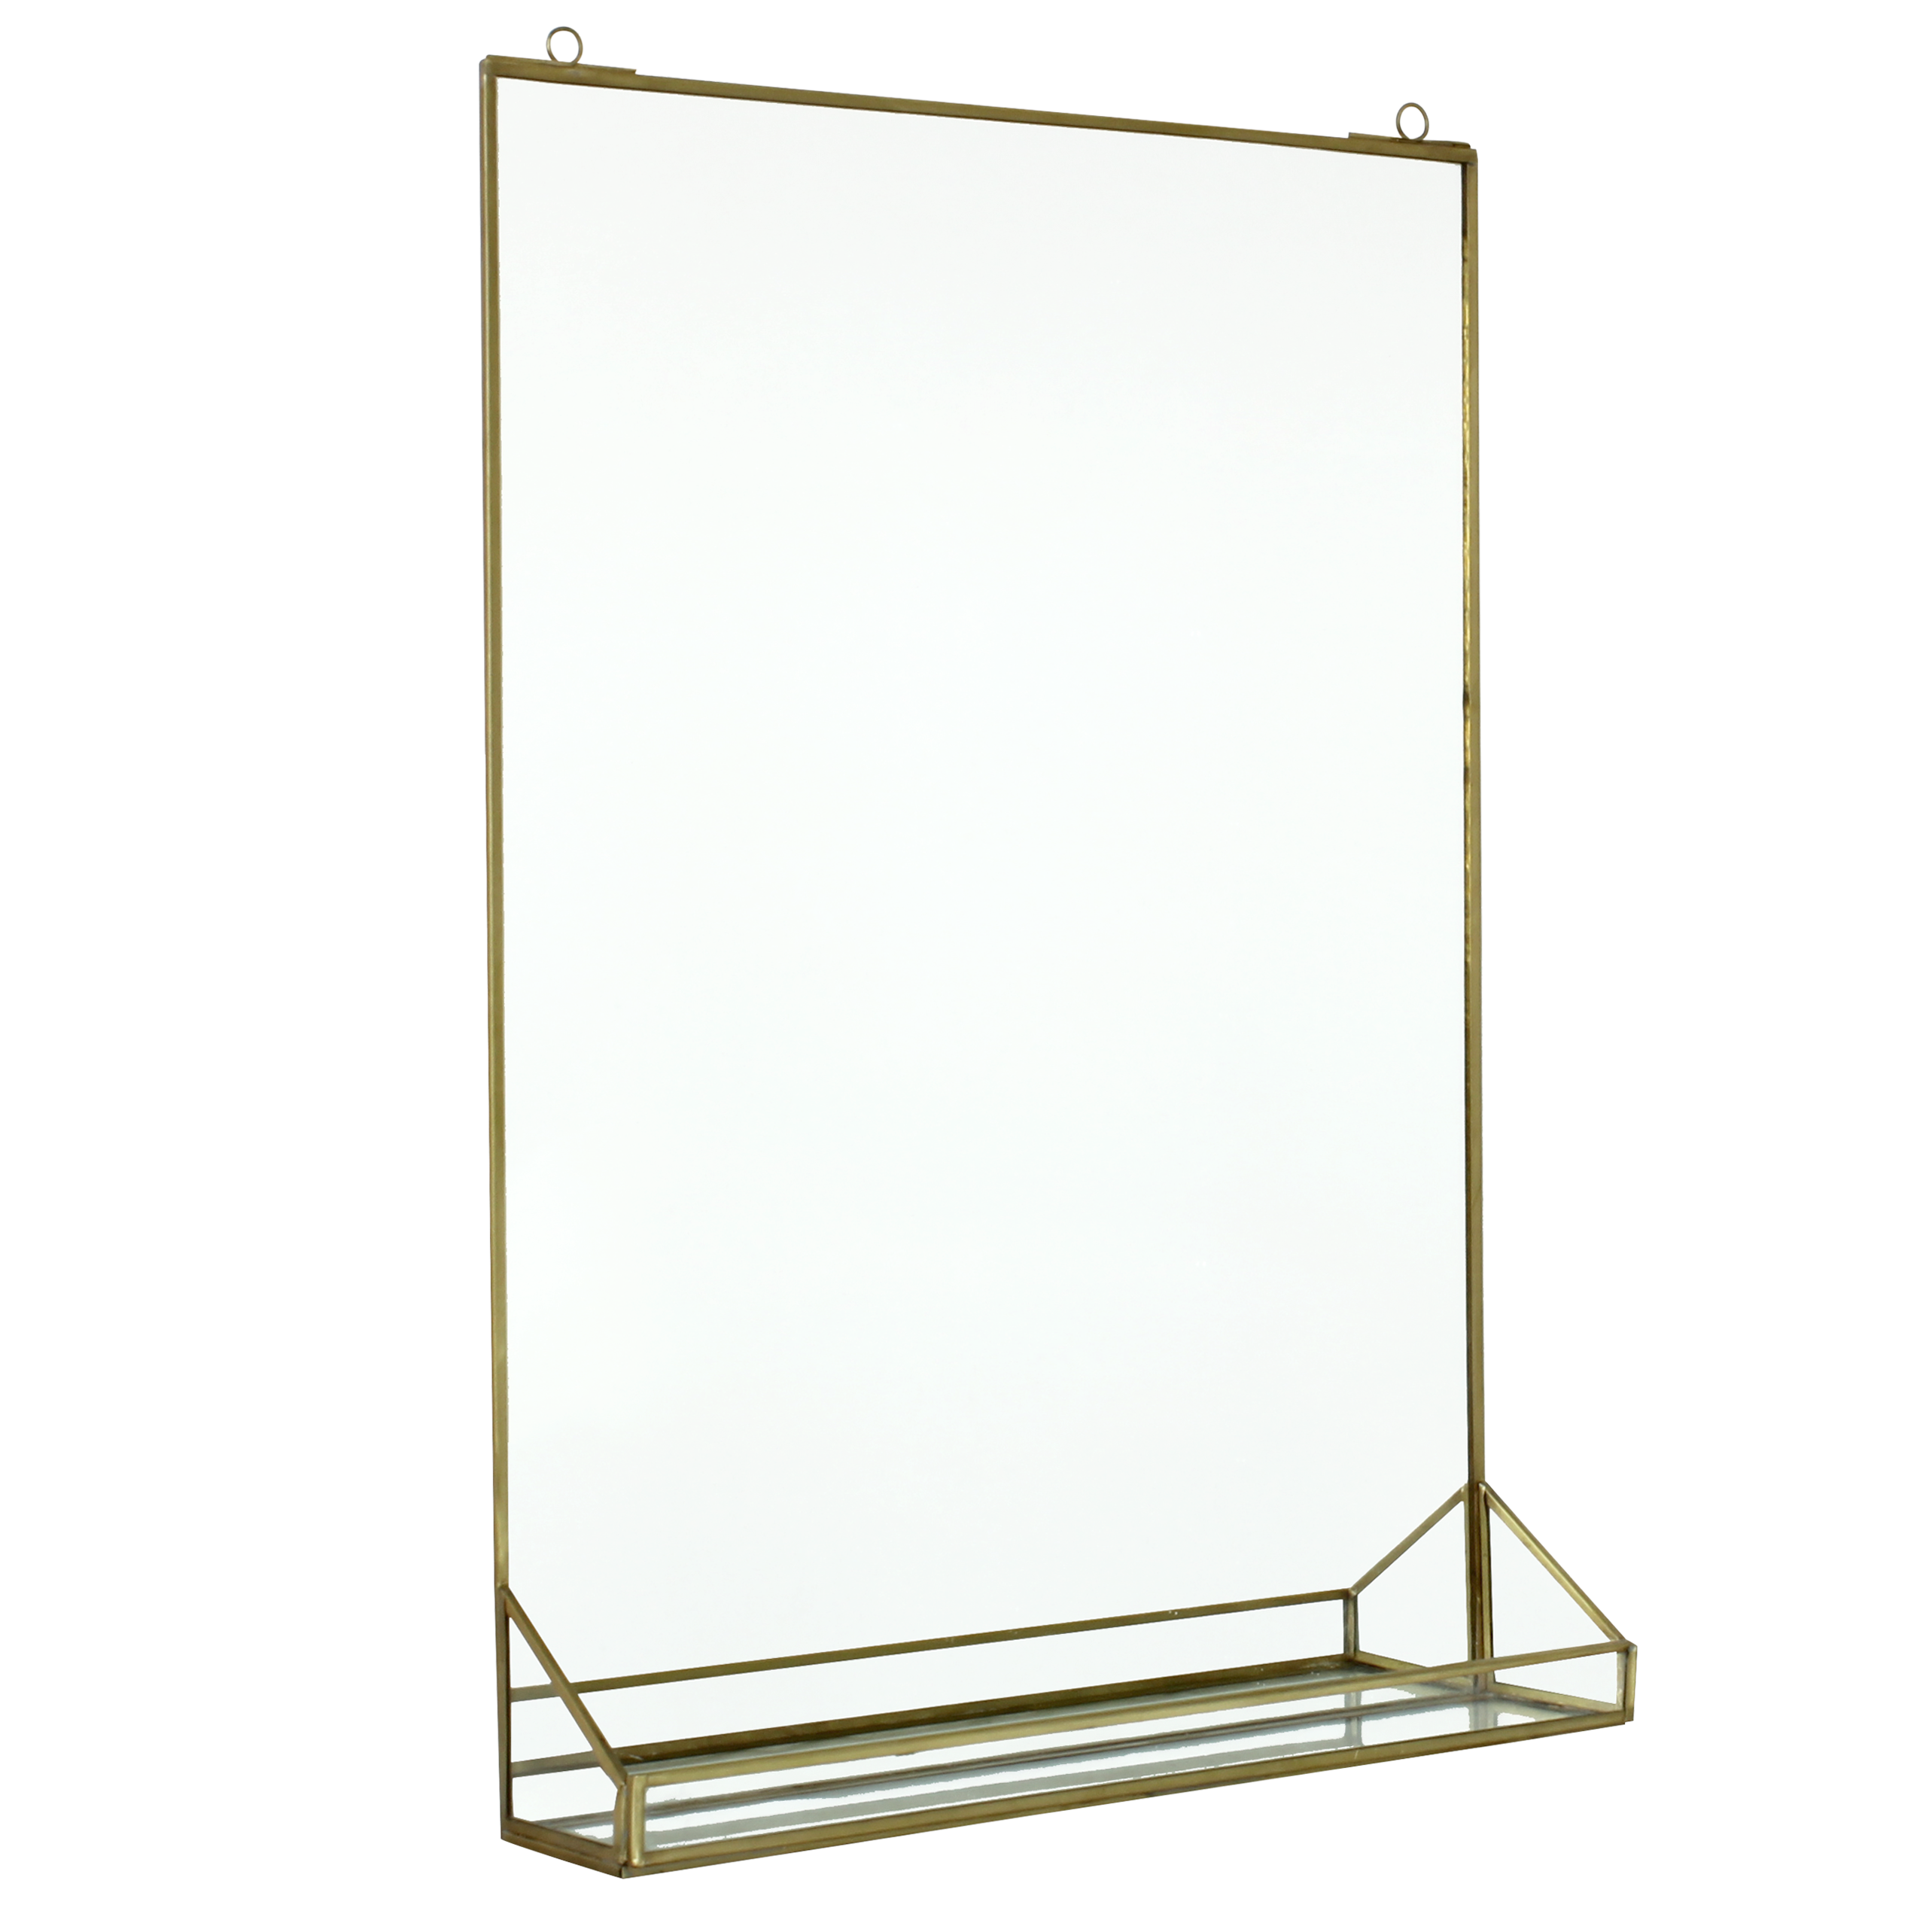 Kleiner Badspiegel Wandspiegel Wall Mirror Regal Messing Antik Brass Look Industrie